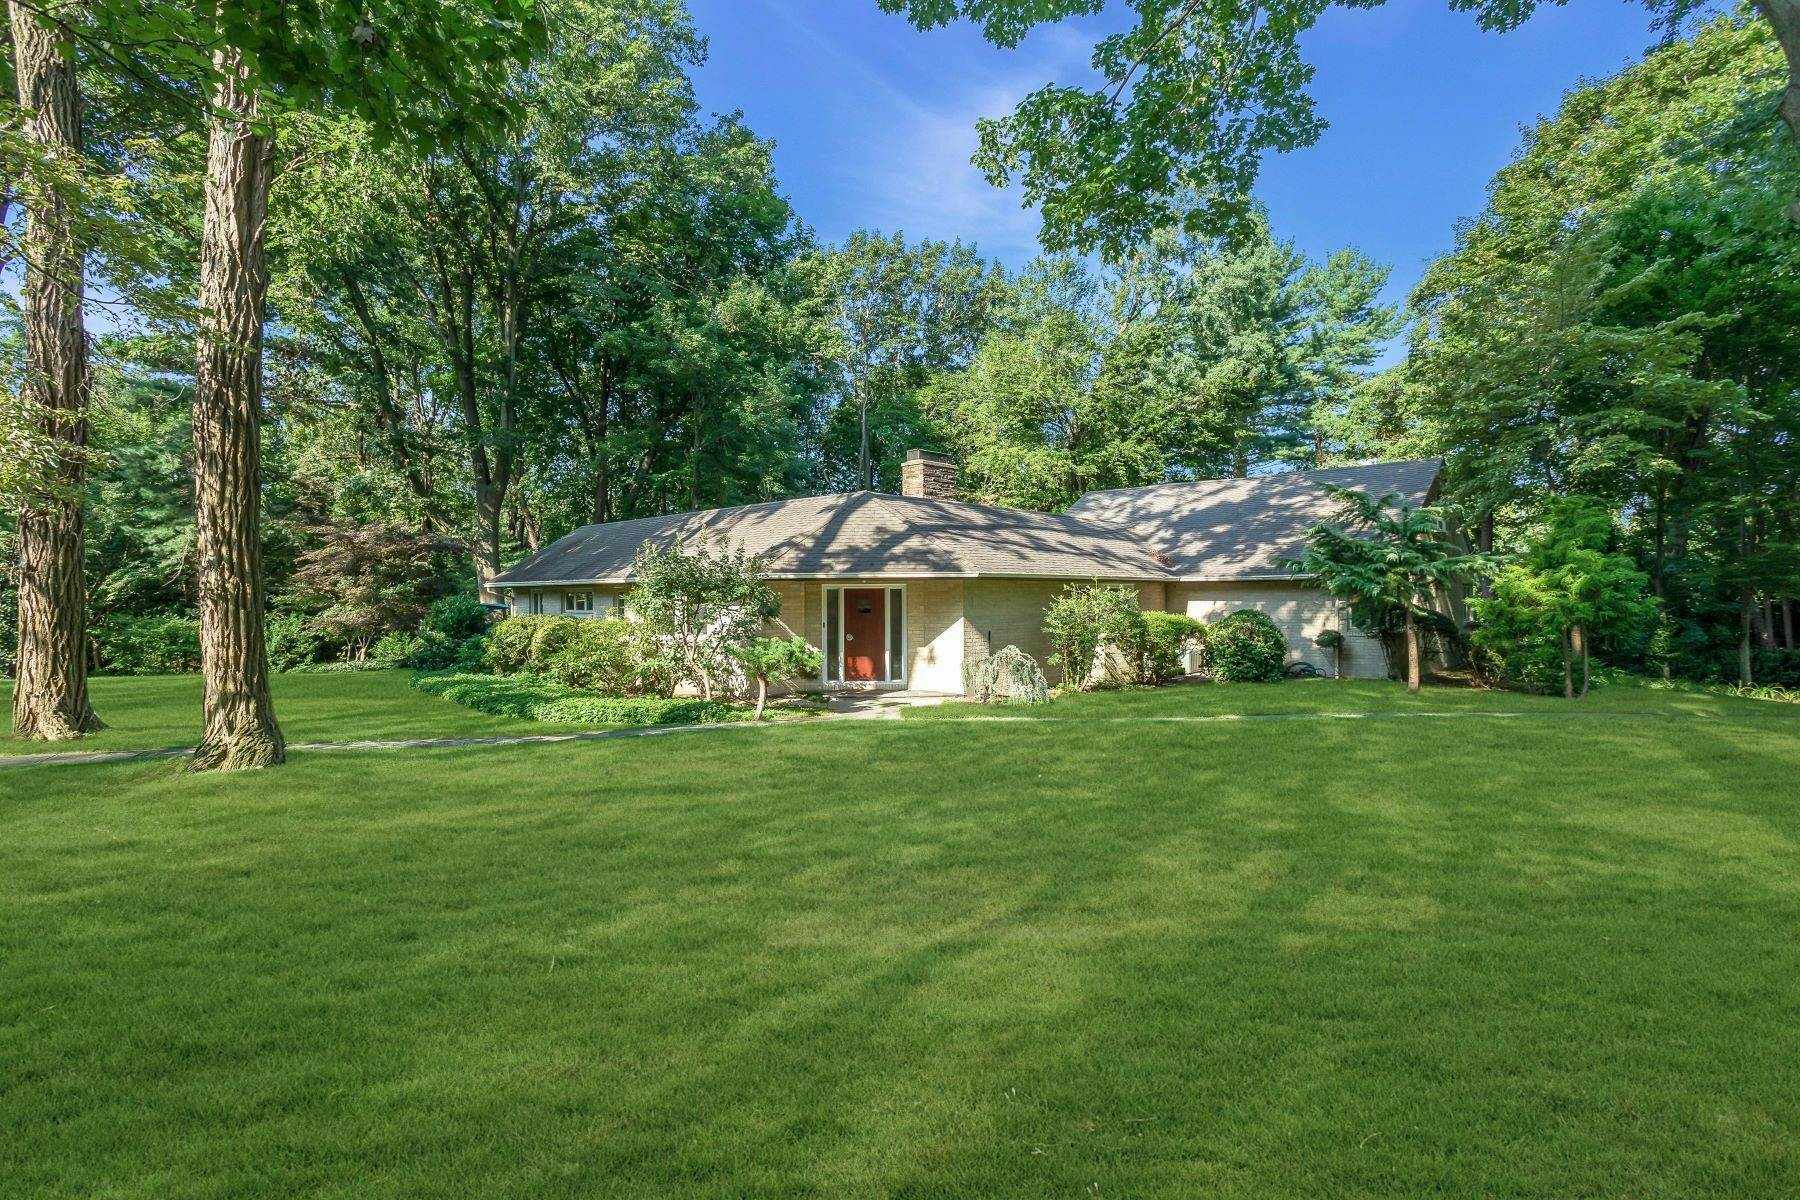 Single Family Homes for Sale at 8 Round Hill Lane, Sands Point, Ny, 11050 8 Round Hill Lane Sands Point, New York 11050 United States